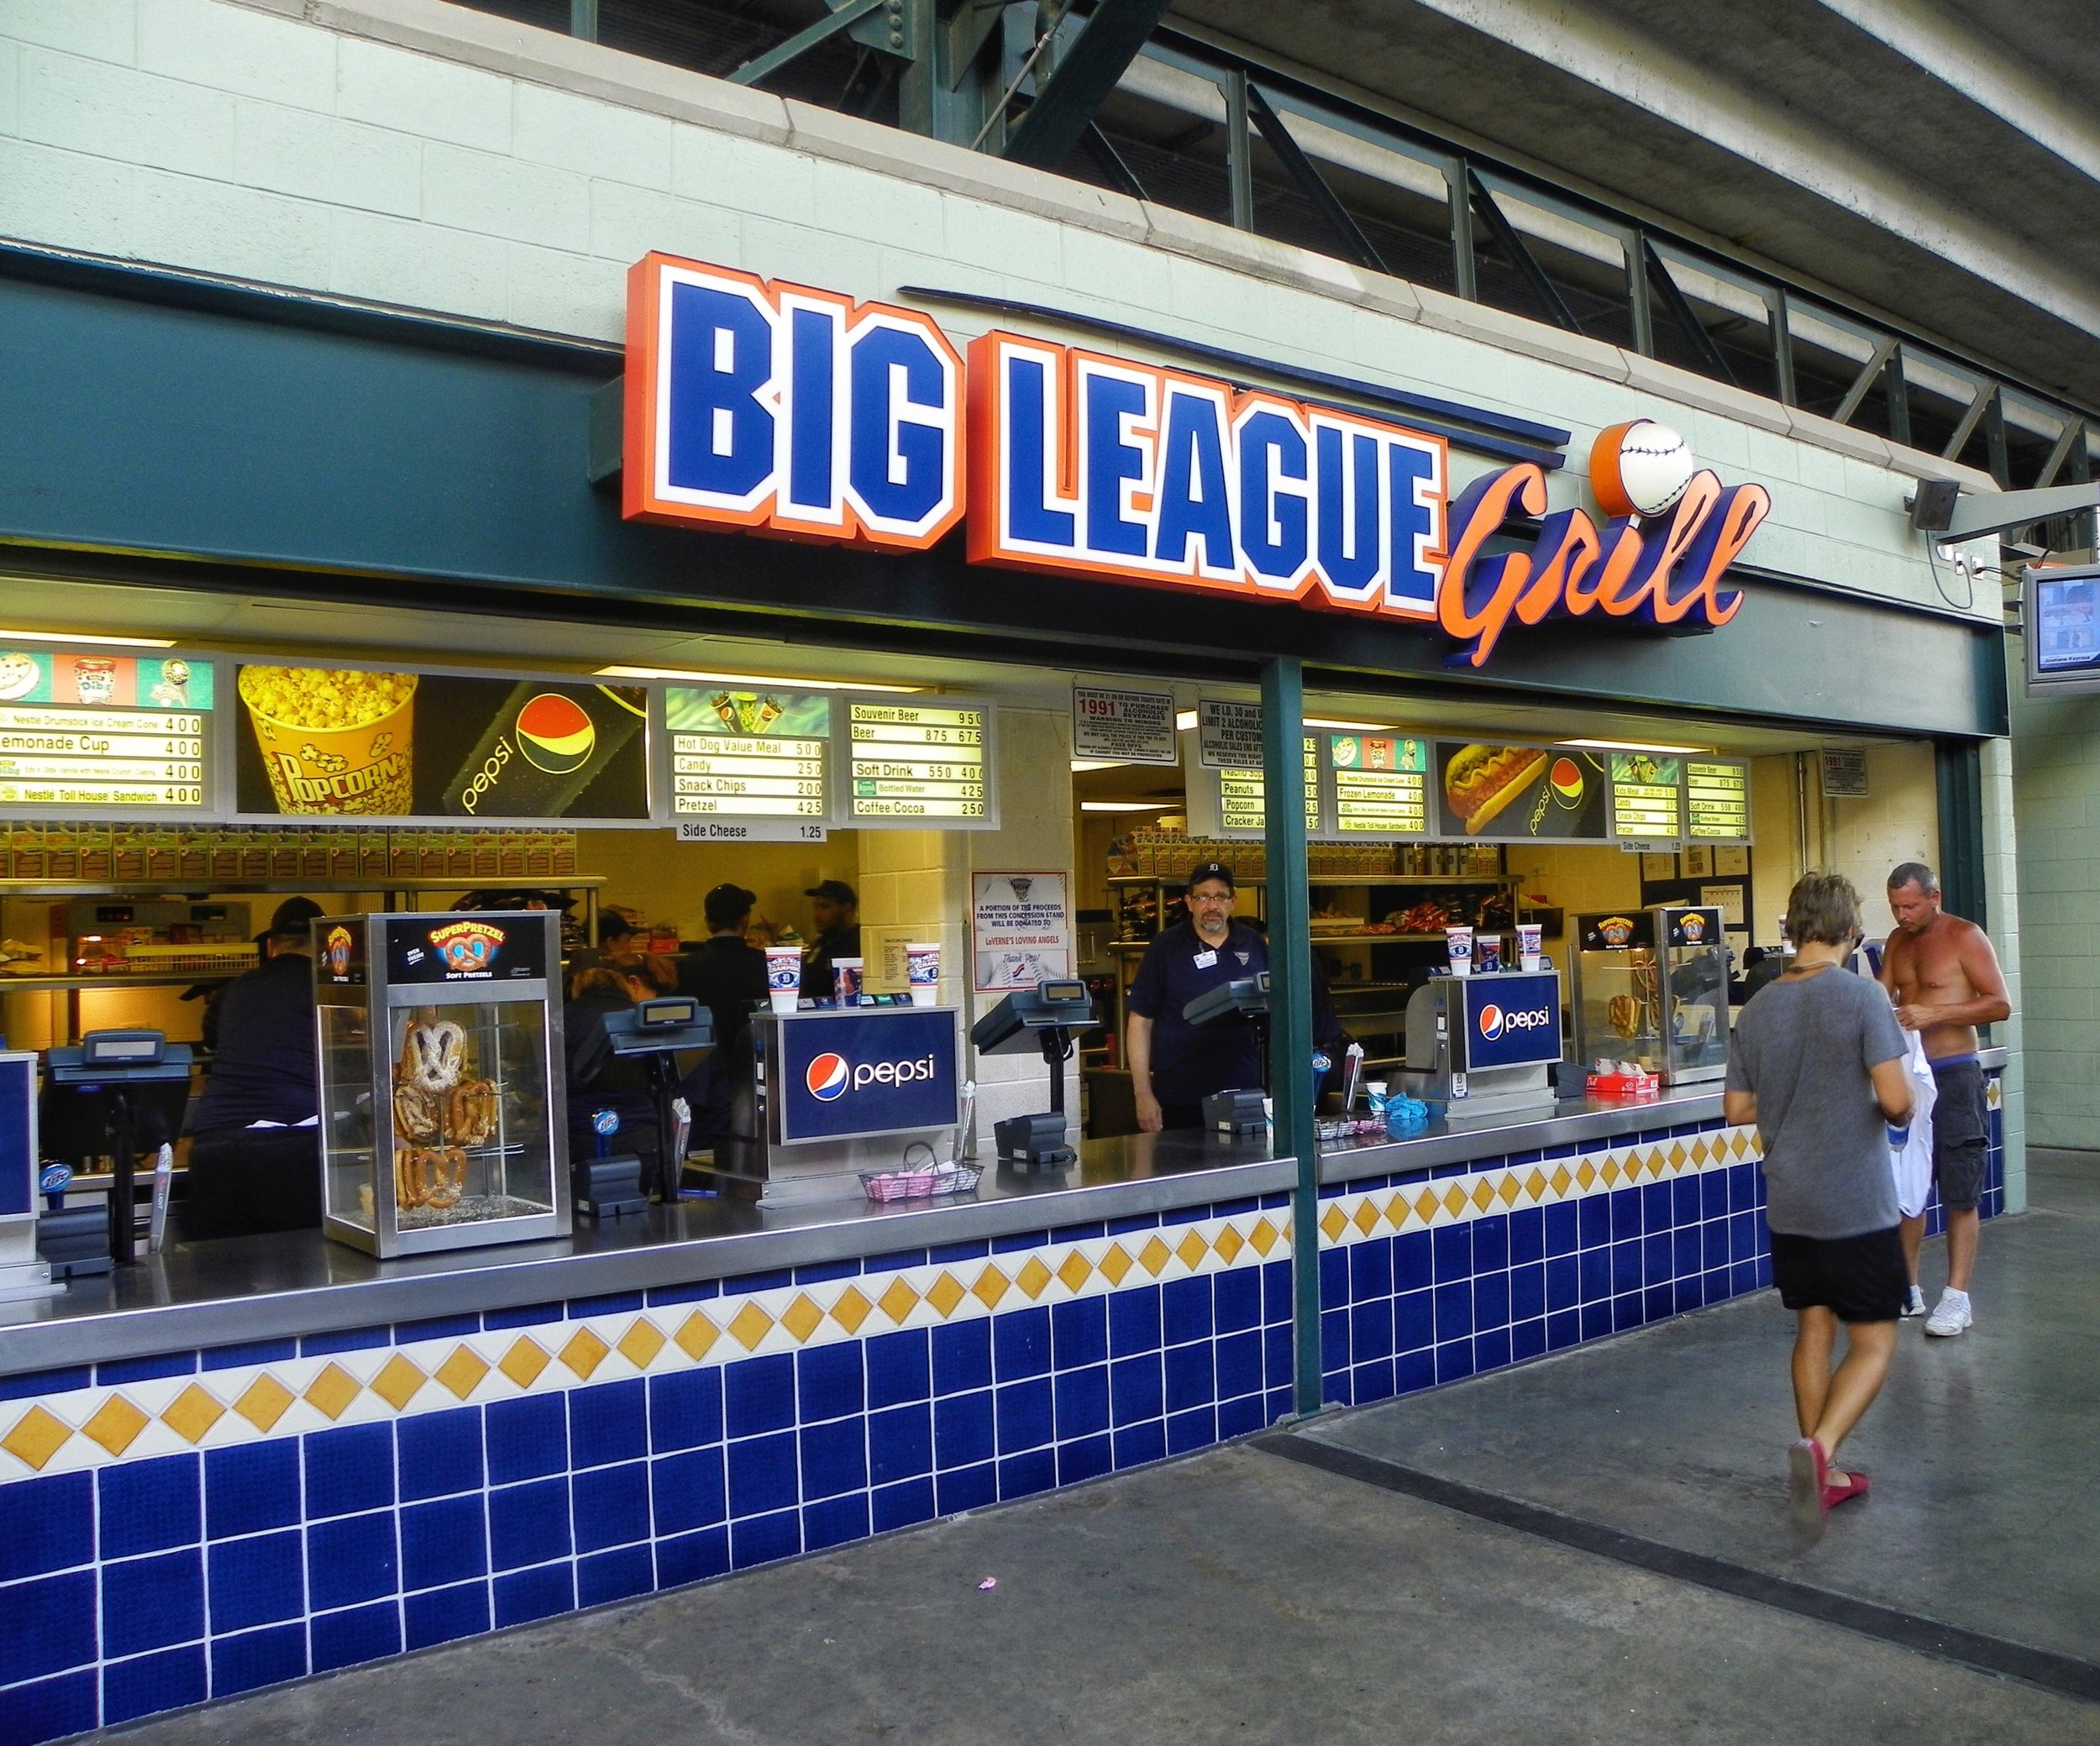 Big League Grill? How boring and generic can you get.